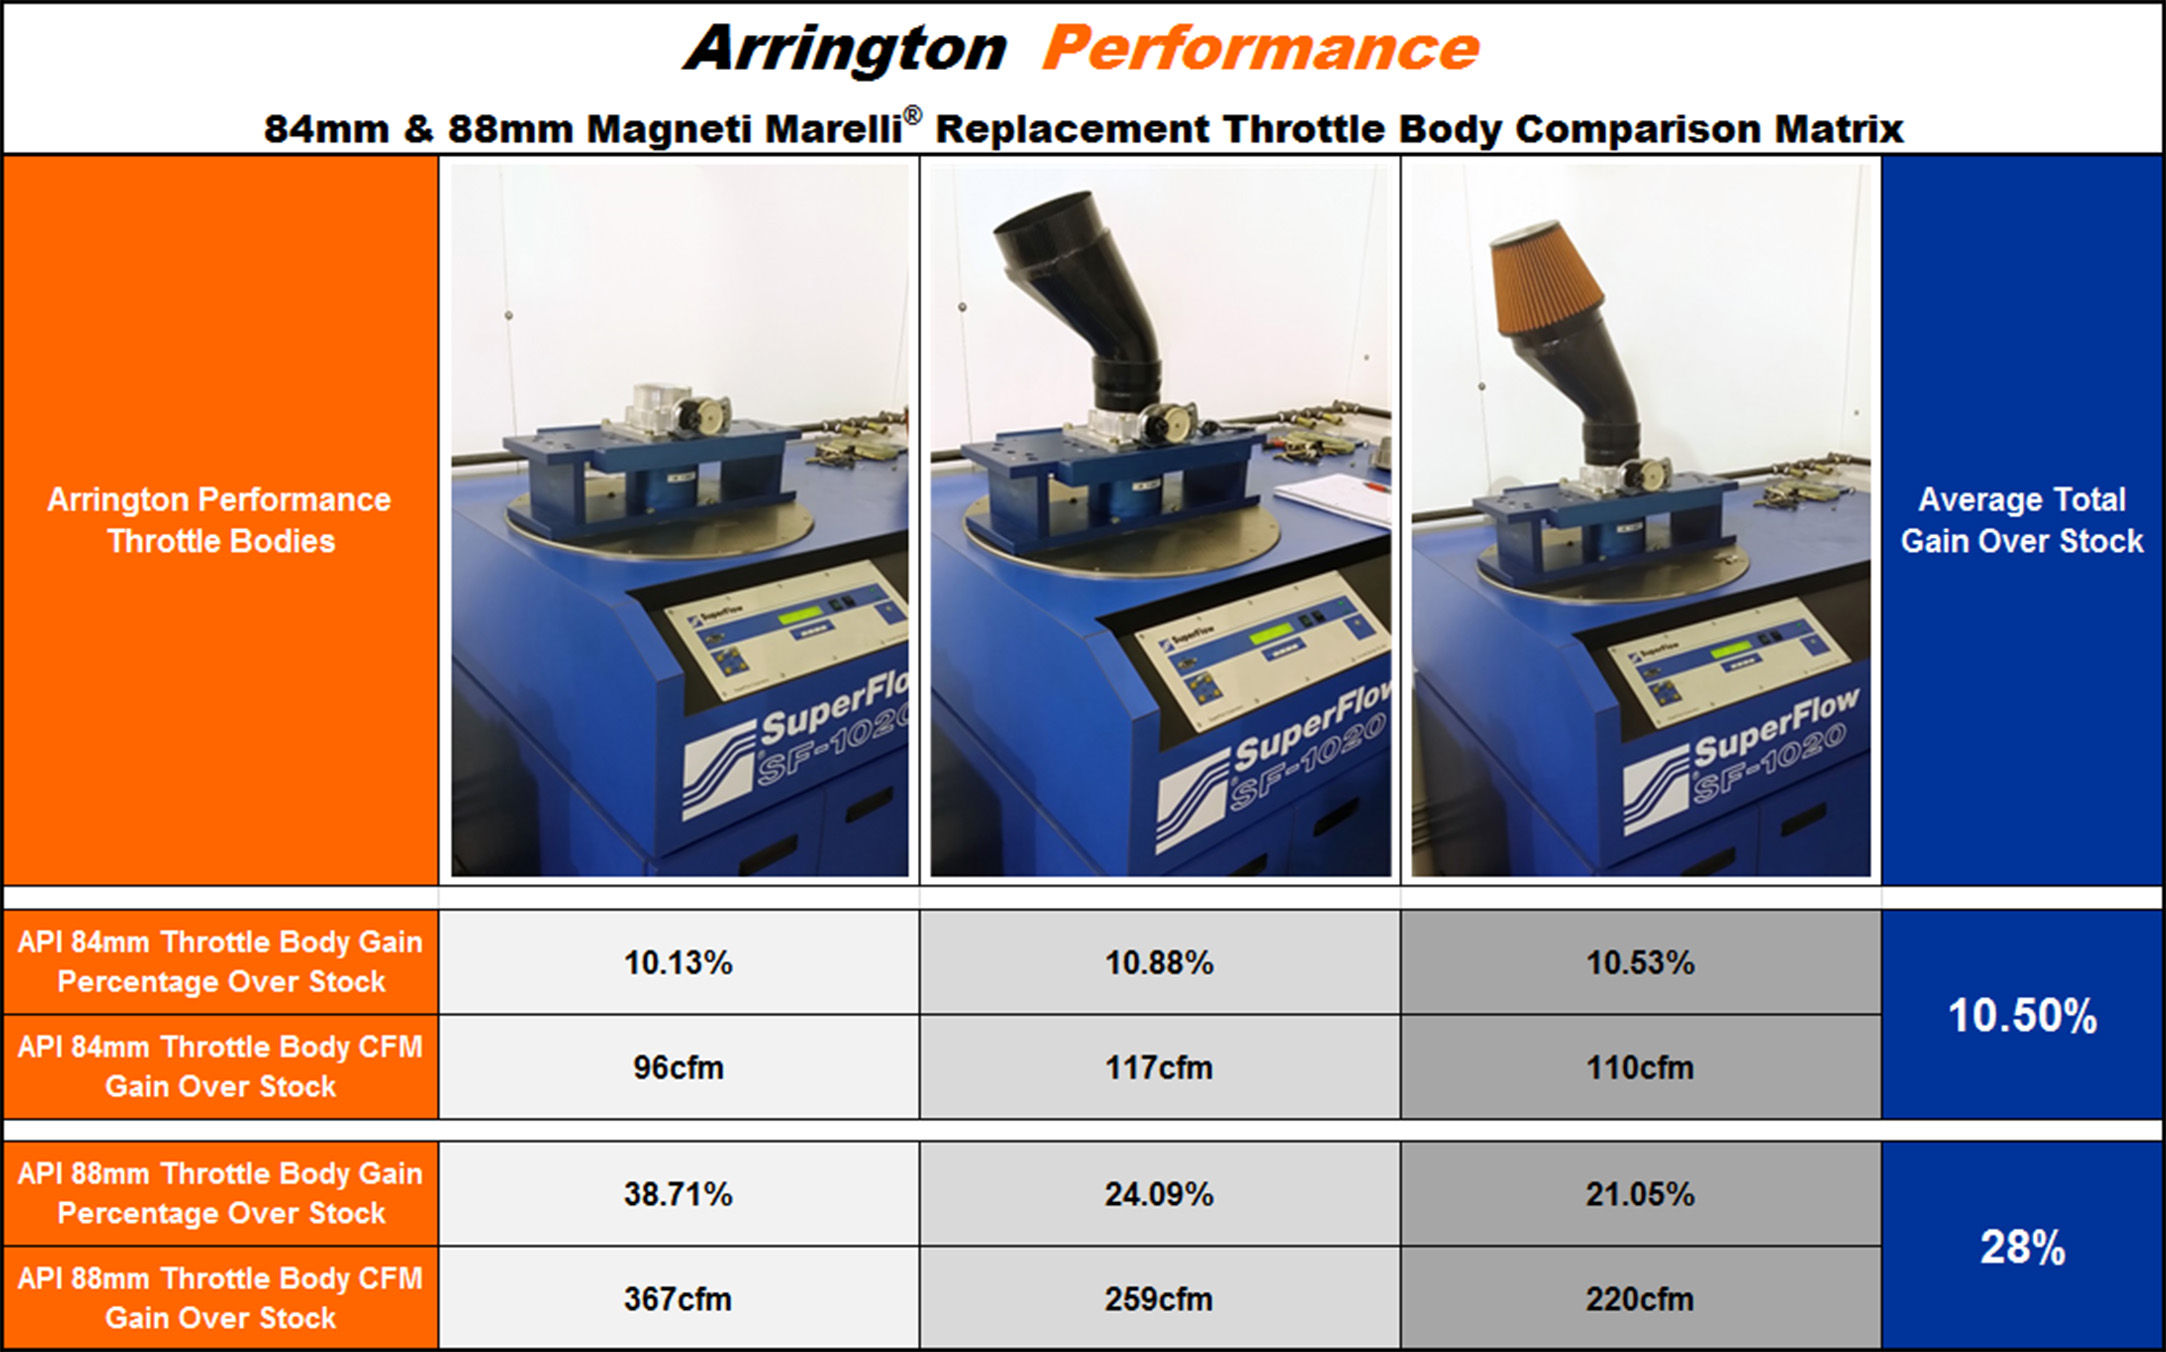 Arrington Performance 84mm and 88mm Flow Comparison to Stock 80mm Magnet Marelli